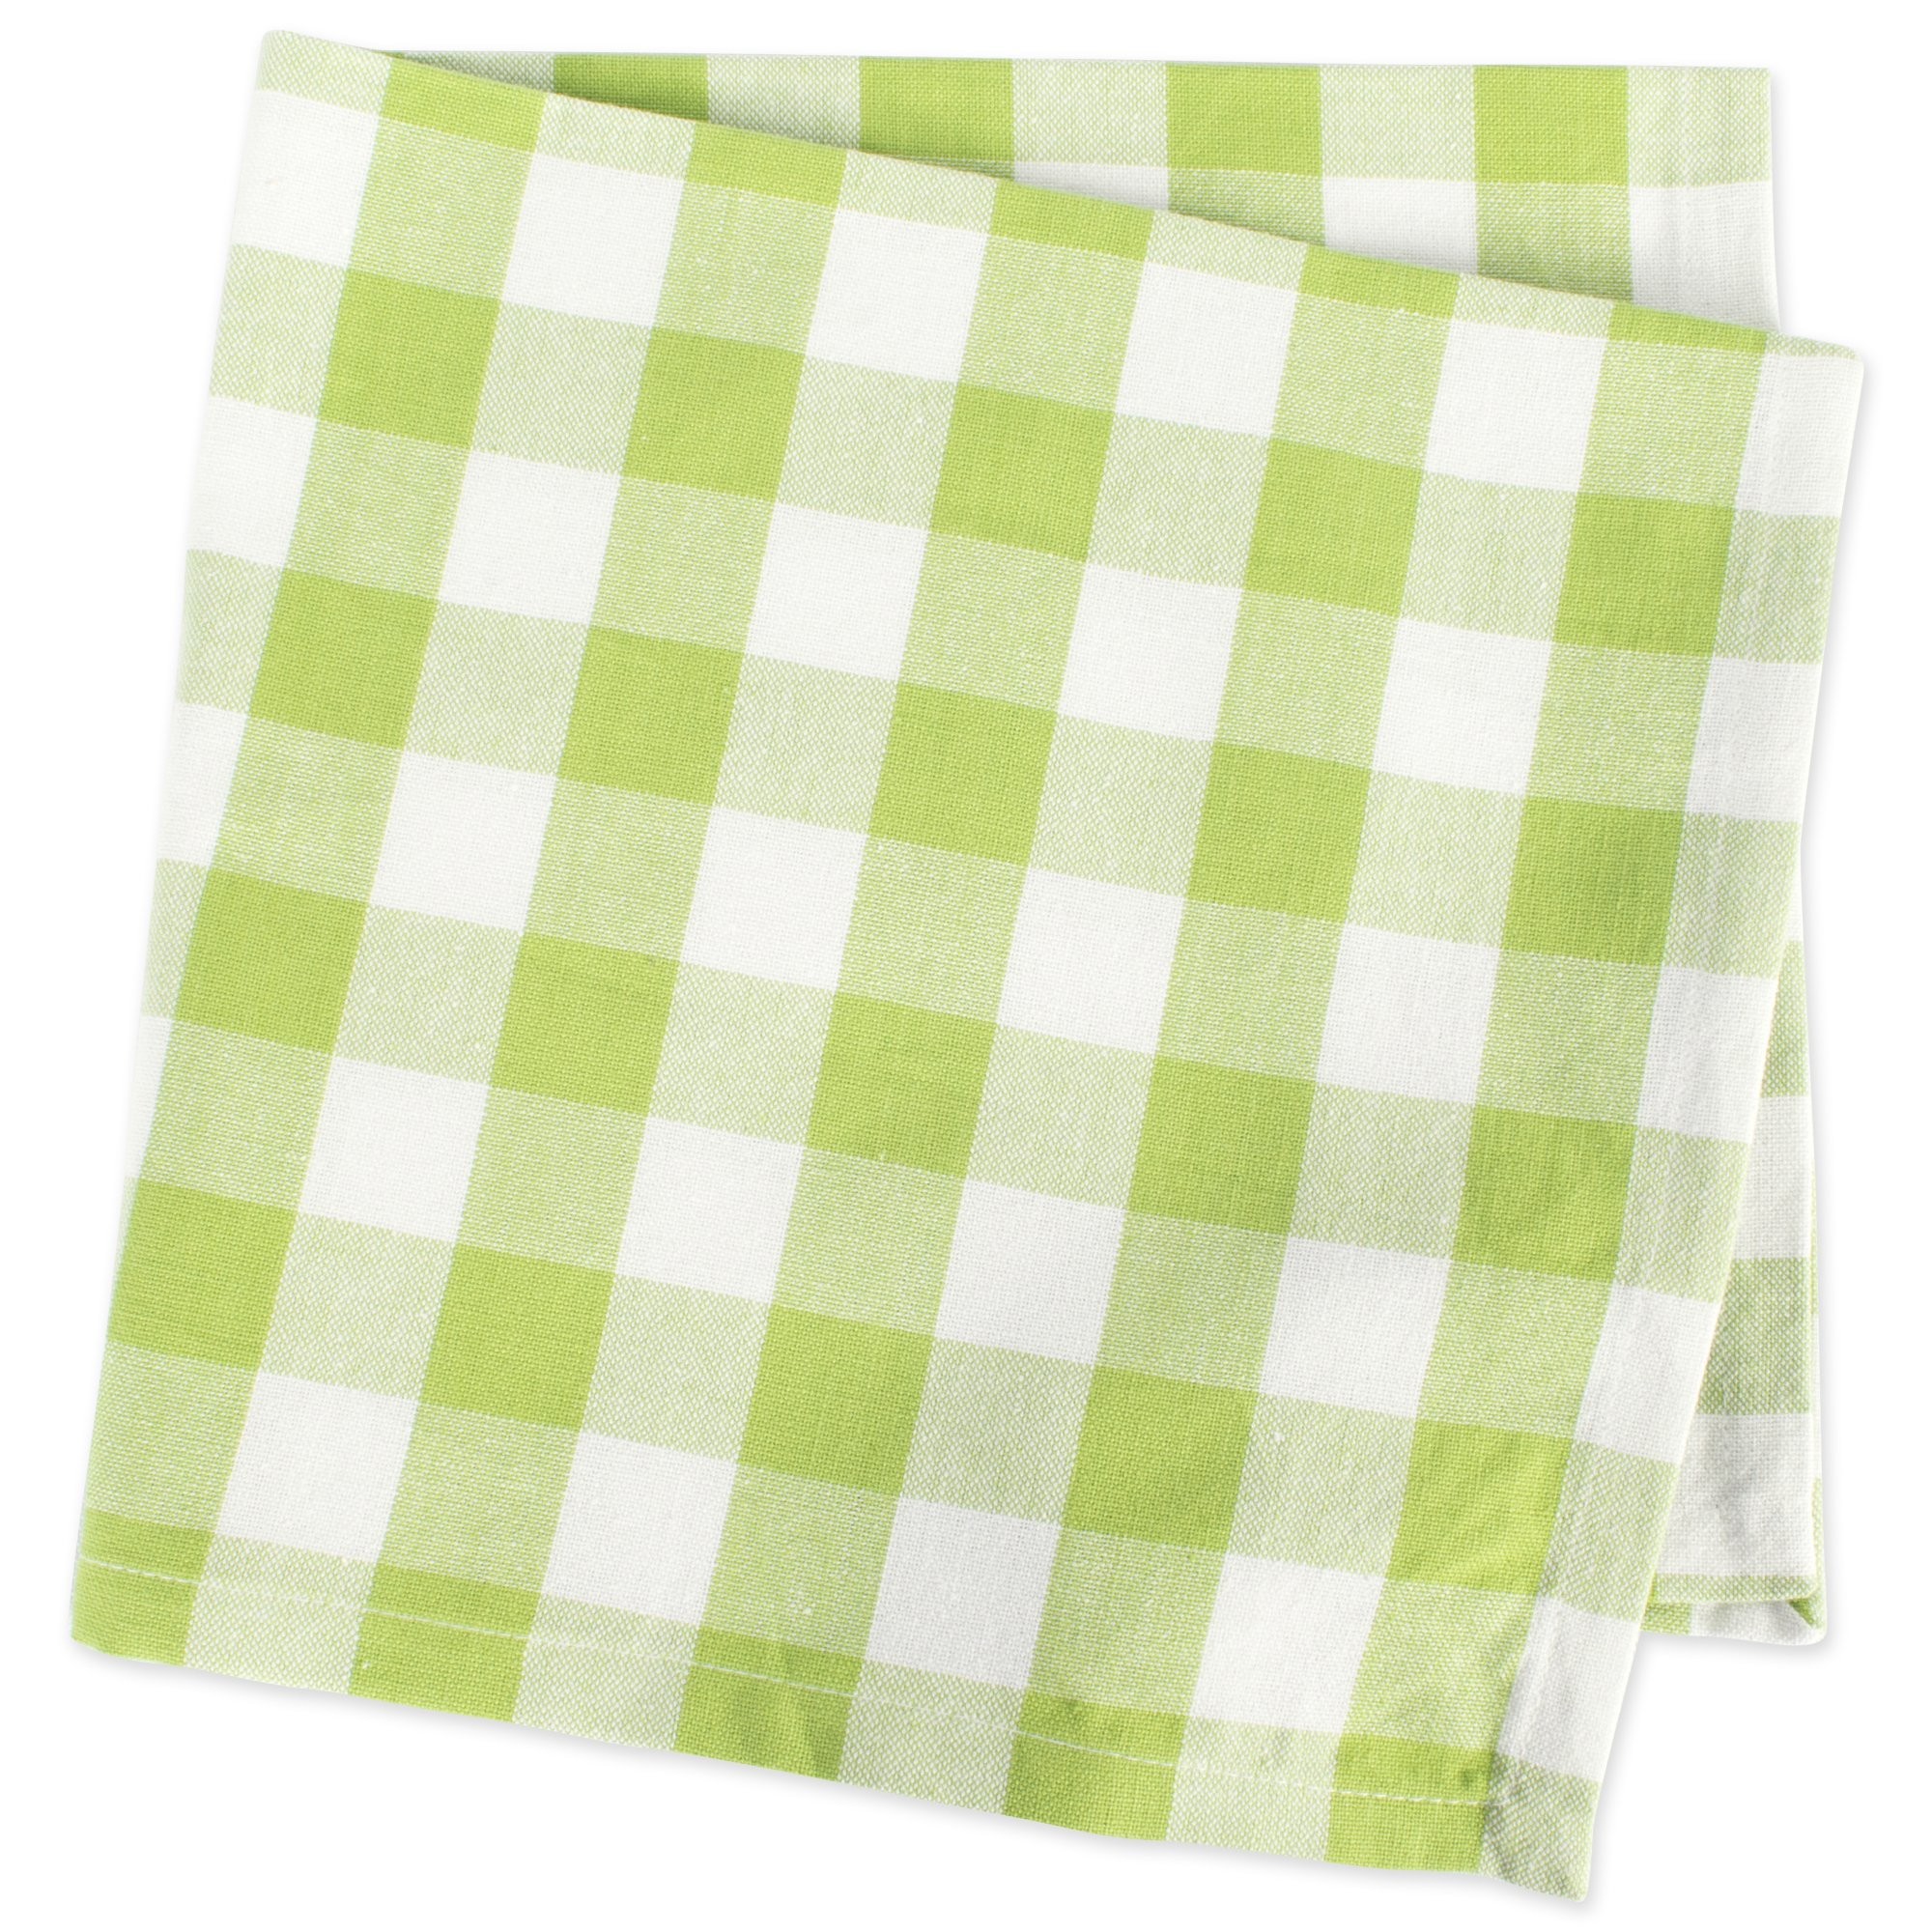 DII 100% Cotton, Oversized Basic Everyday 20x 20 Napkin, Set of 6, Green Apple Check by DII (Image #4)